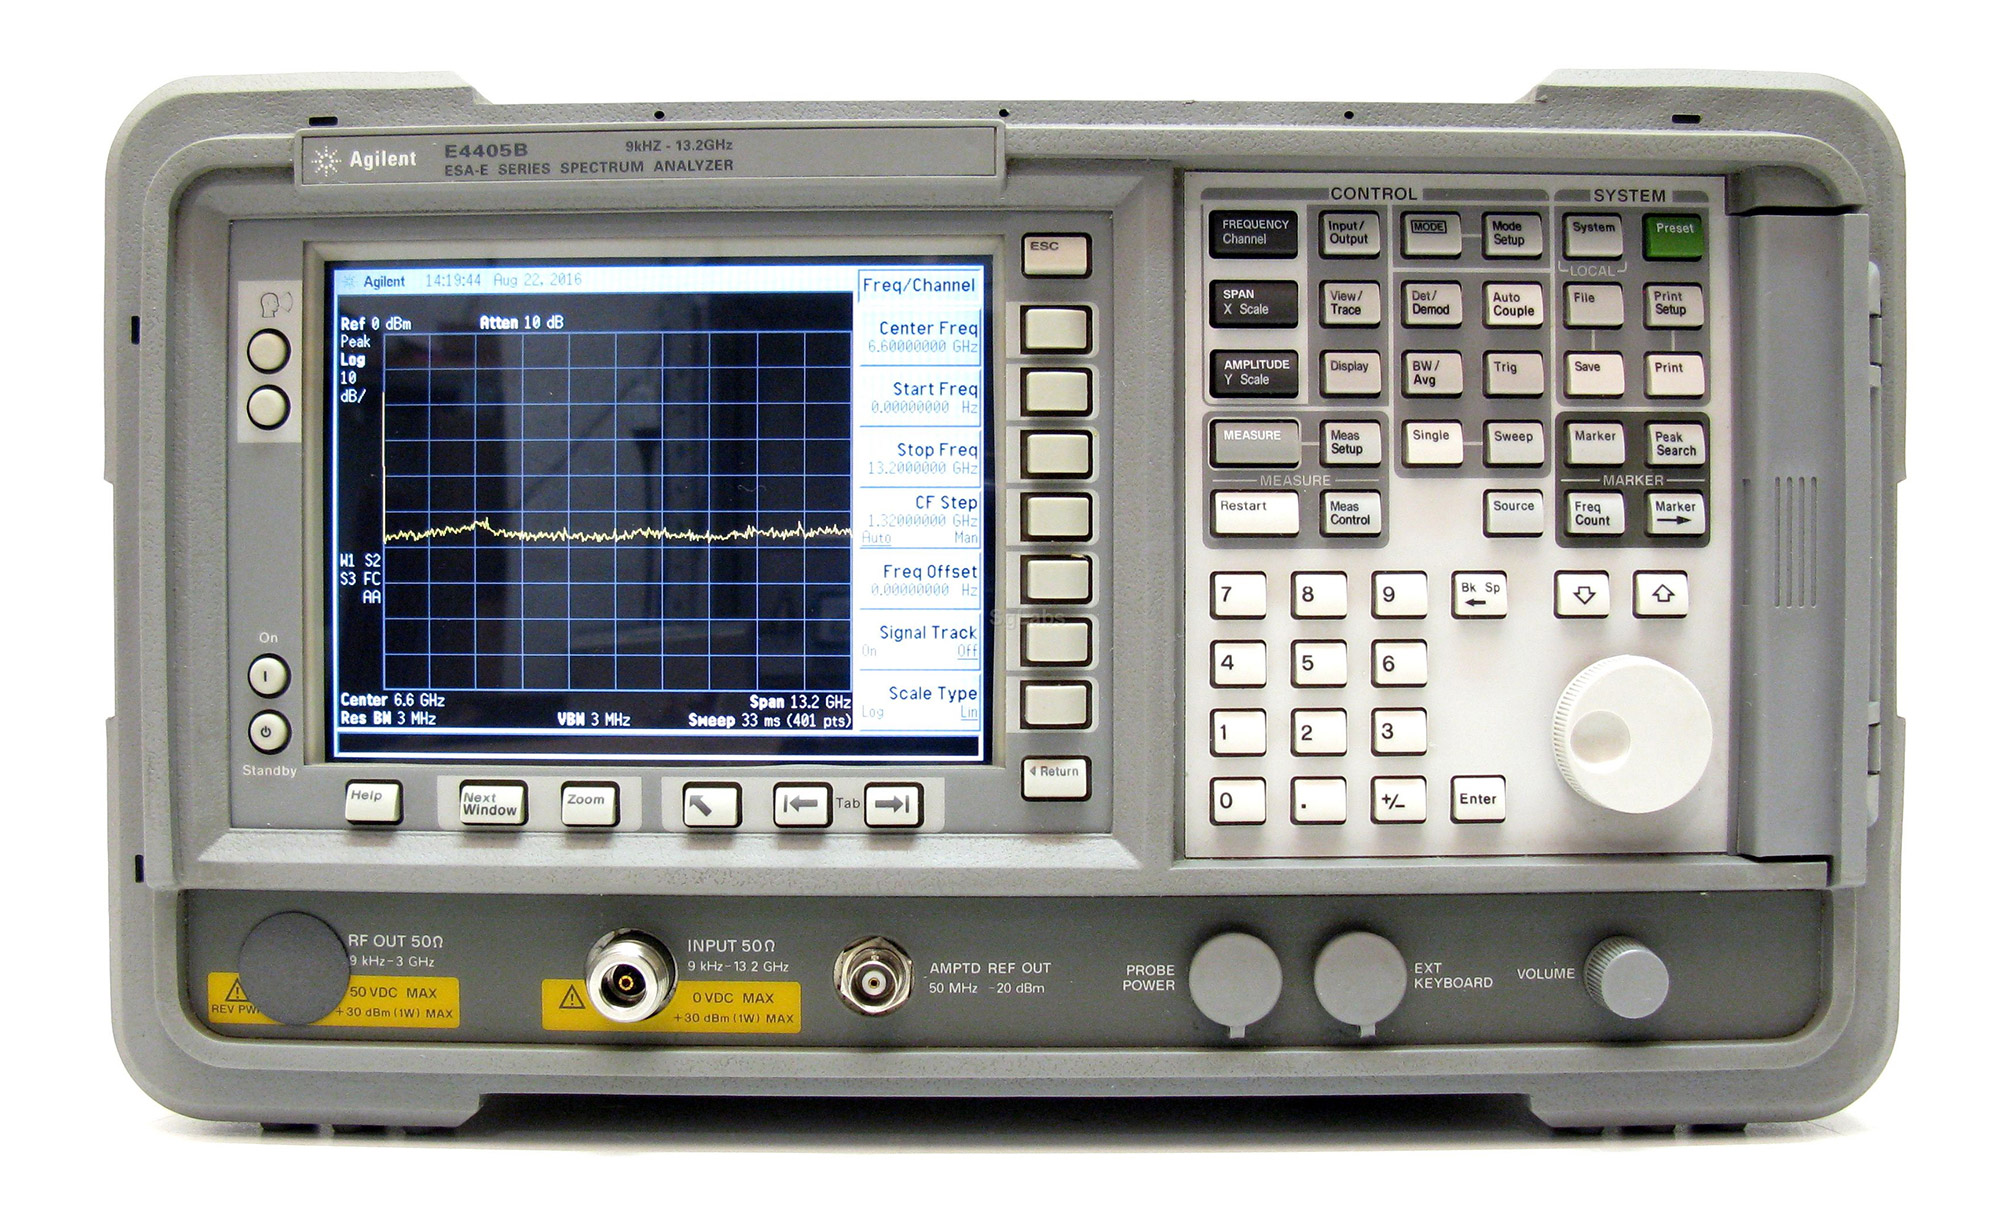 Keysight E4405B 9 kHz - 13.2 GHz Spectrum Analyzer